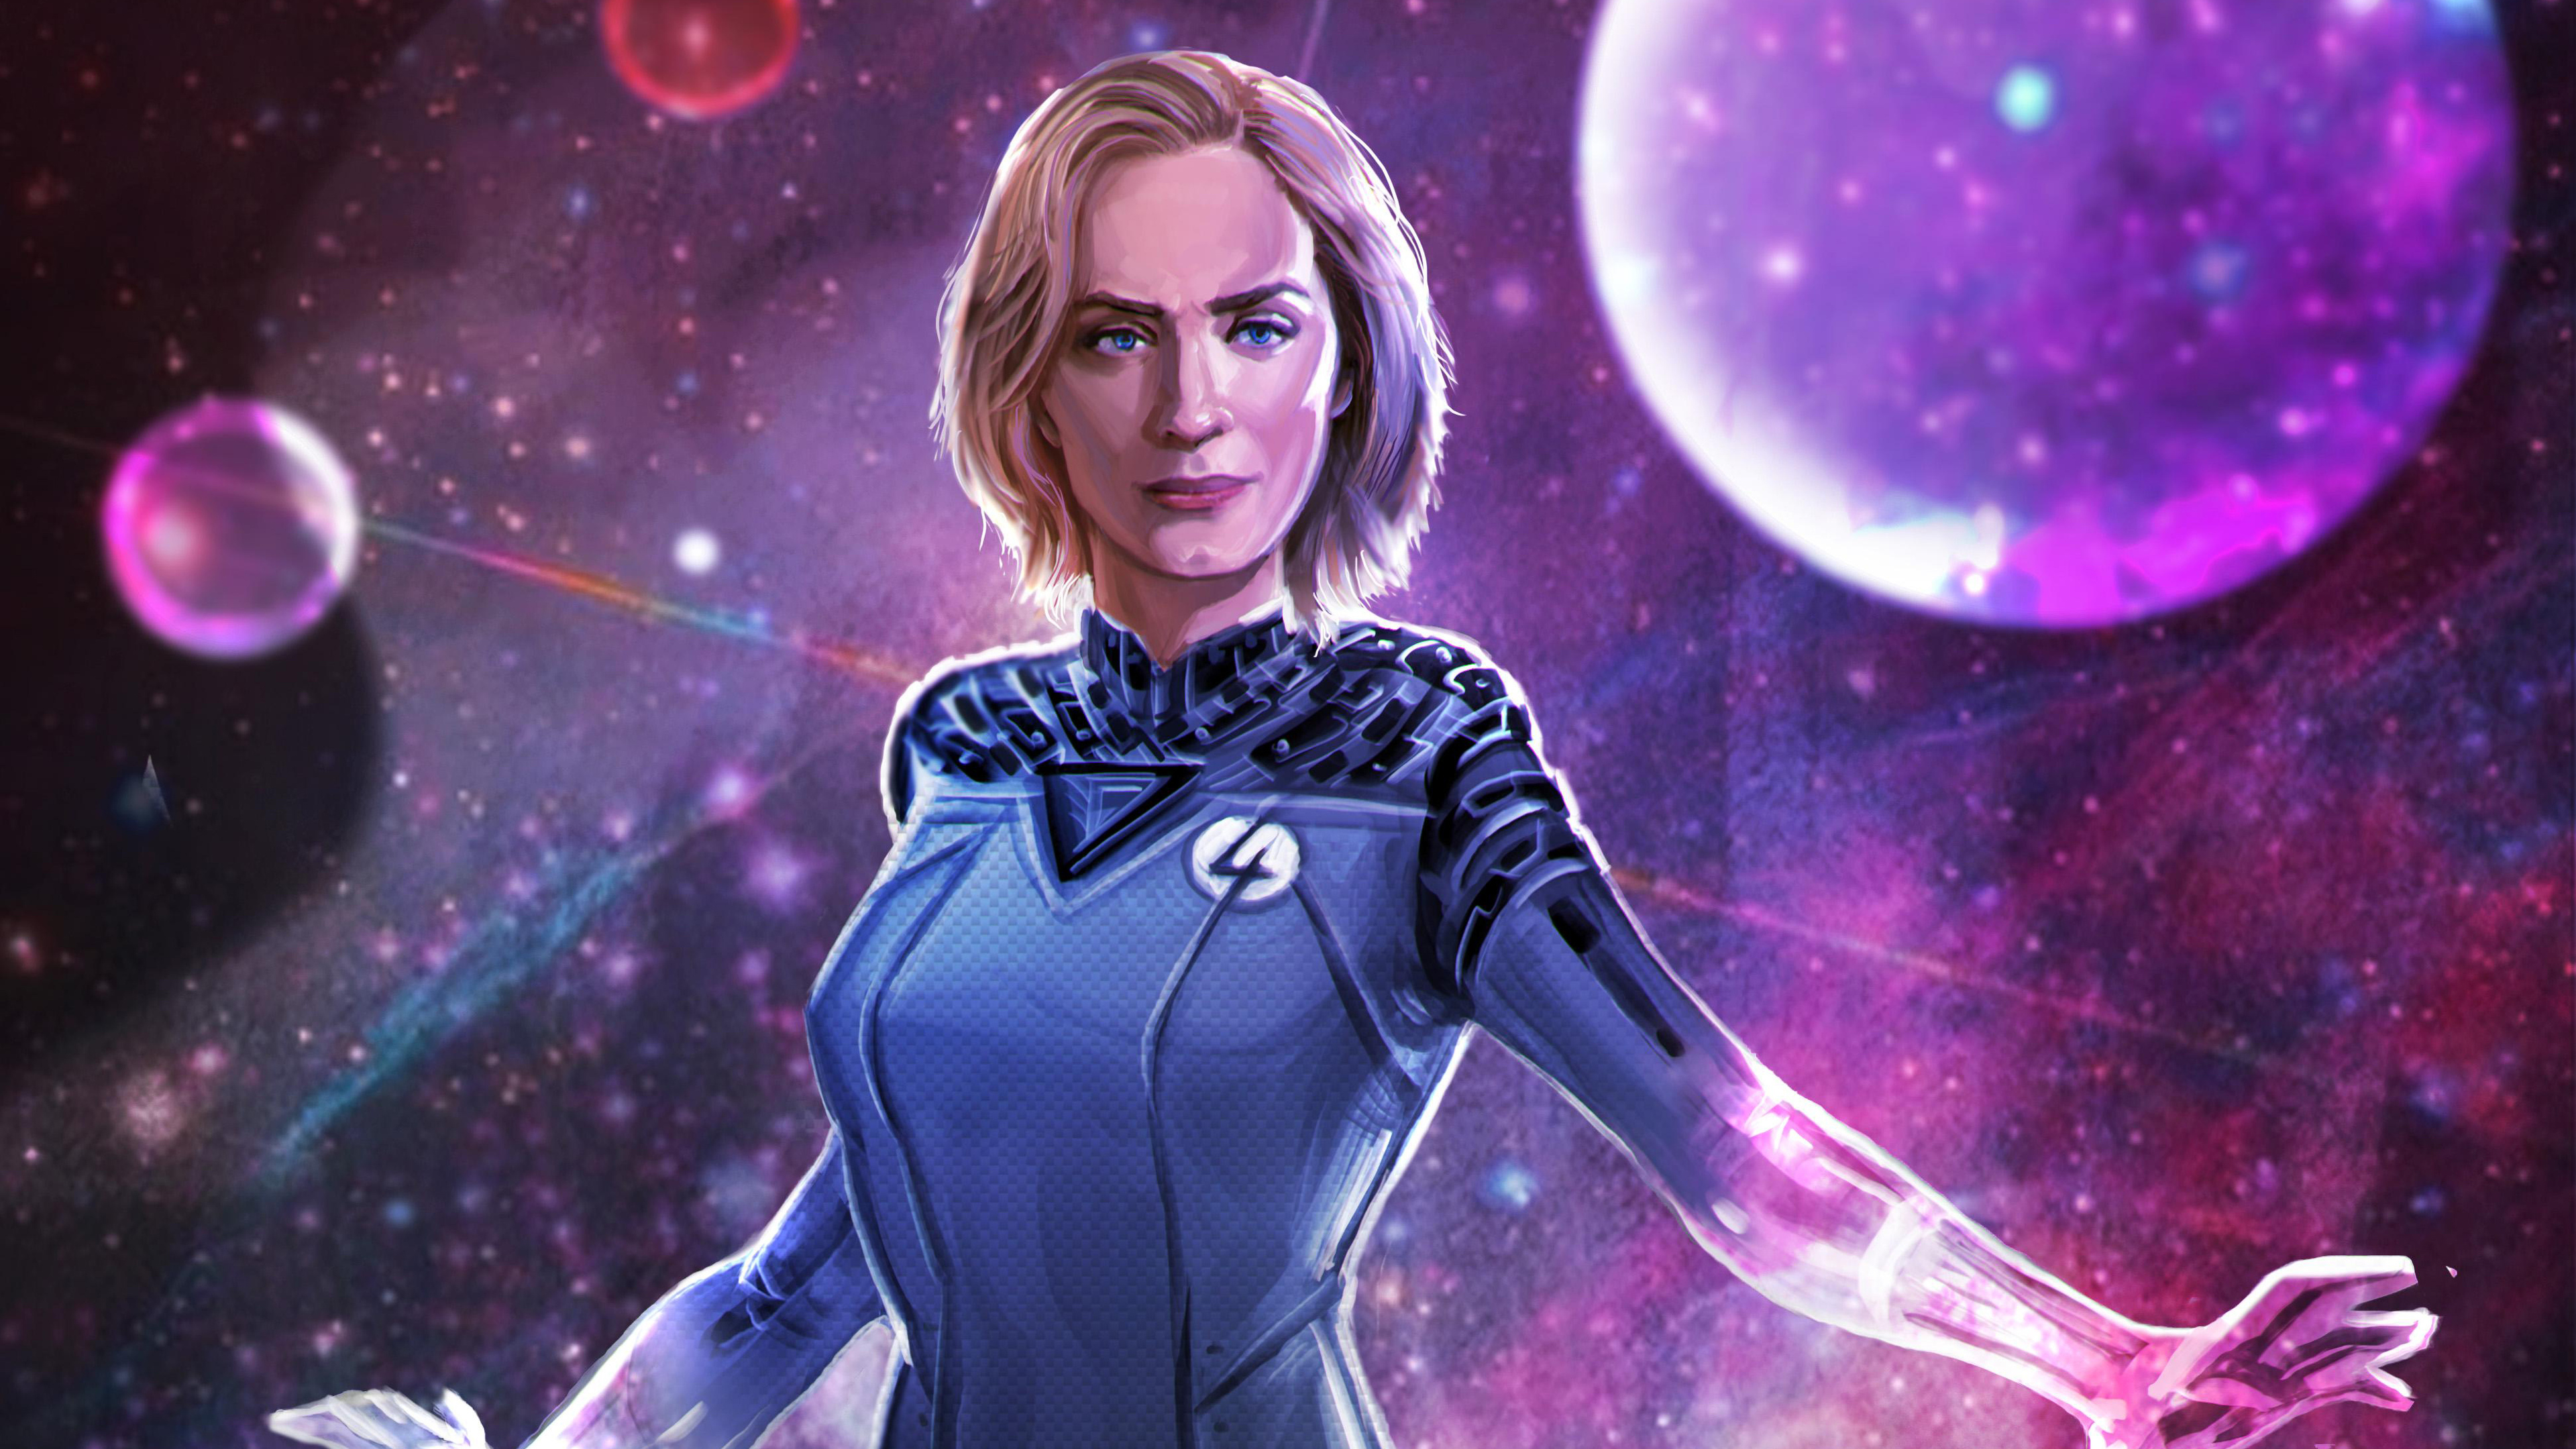 emily blunt as sue storm artwork 1543618666 - Emily Blunt As Sue Storm Artwork - superheroes wallpapers, reddit wallpapers, marvel wallpapers, hd-wallpapers, artwork wallpapers, artist wallpapers, 4k-wallpapers